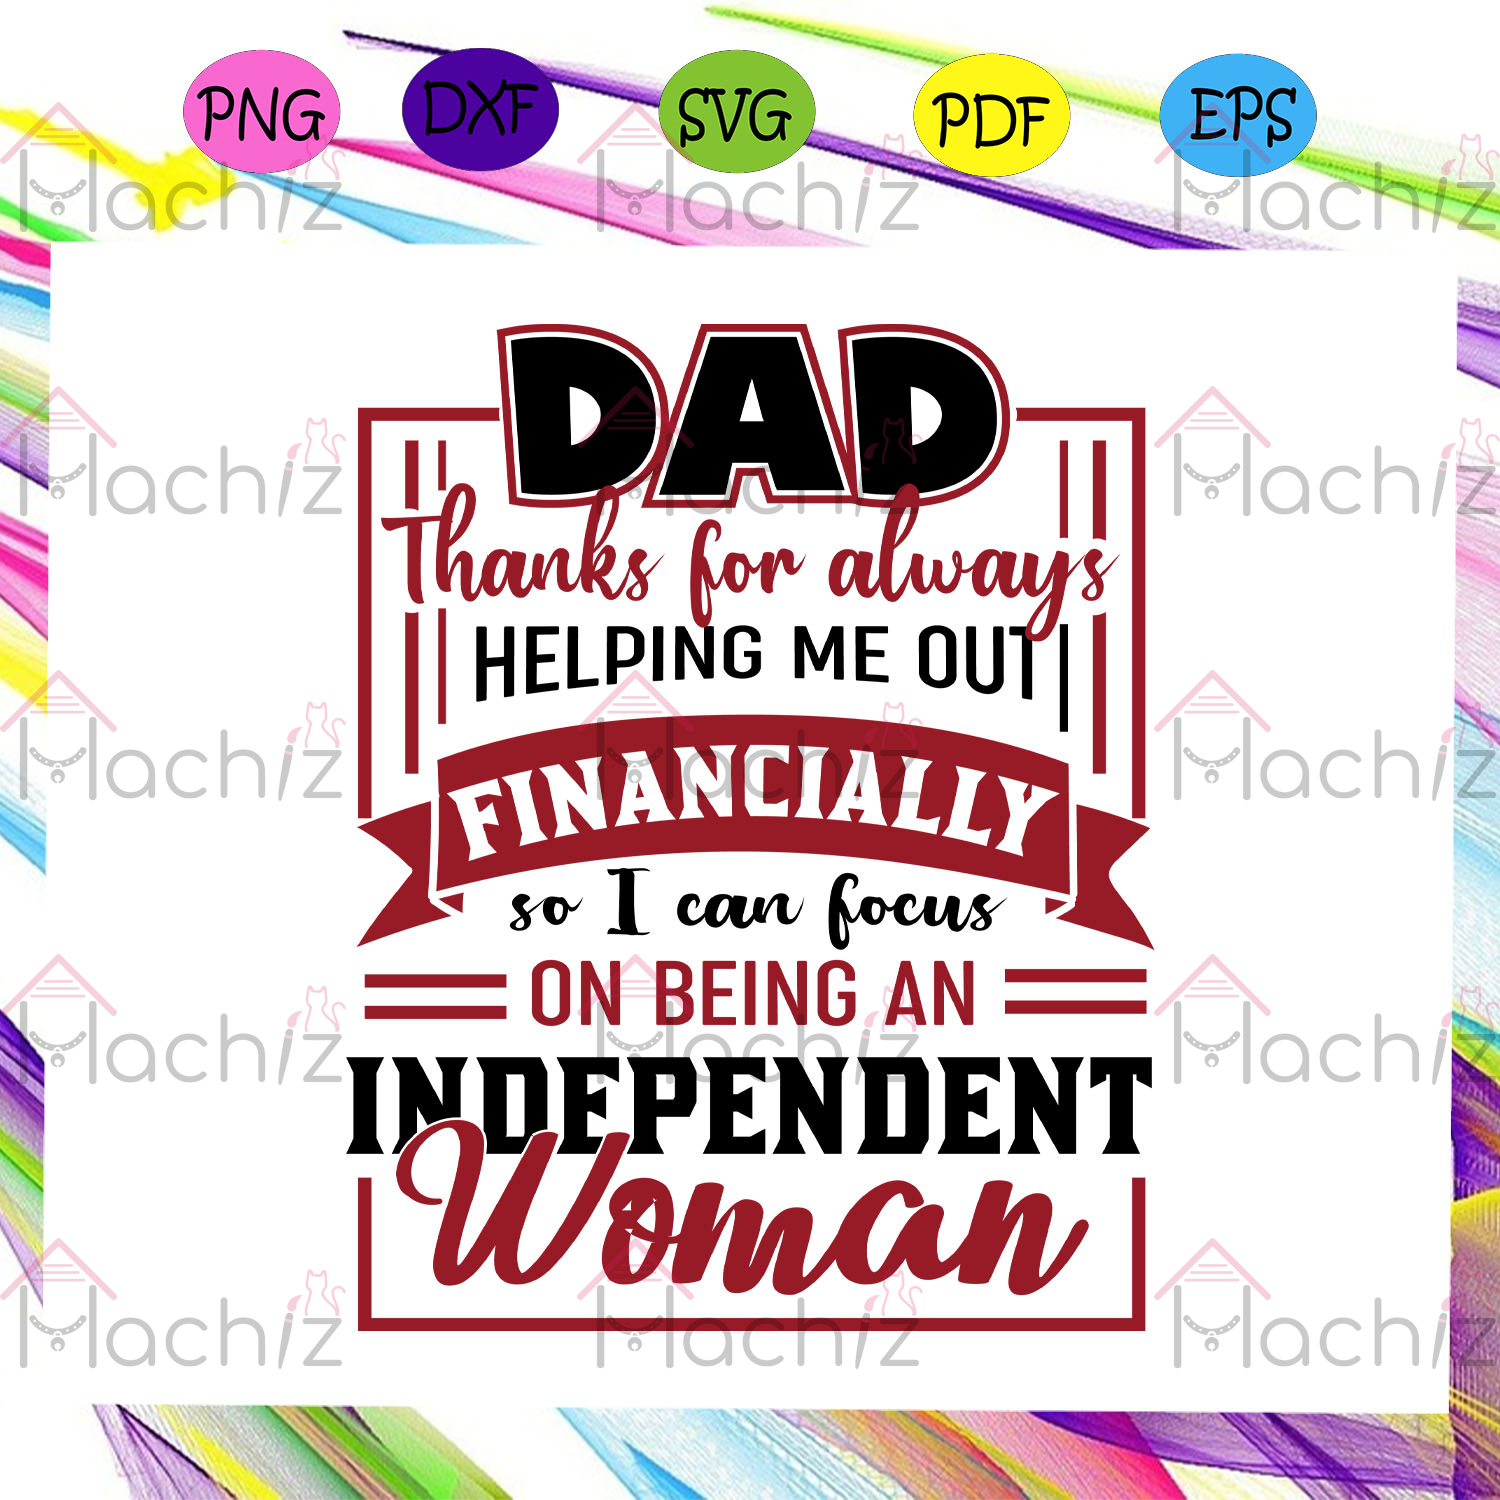 Dad thanks for always helping me out financially svg, fathers day gift from son, fathers day gift, gift for papa, fathers day lover, fathers day lover gift, dad life, dad svg, Files For Silhouette, Files For Cricut, SVG, DXF, EPS, PNG, Instant Download